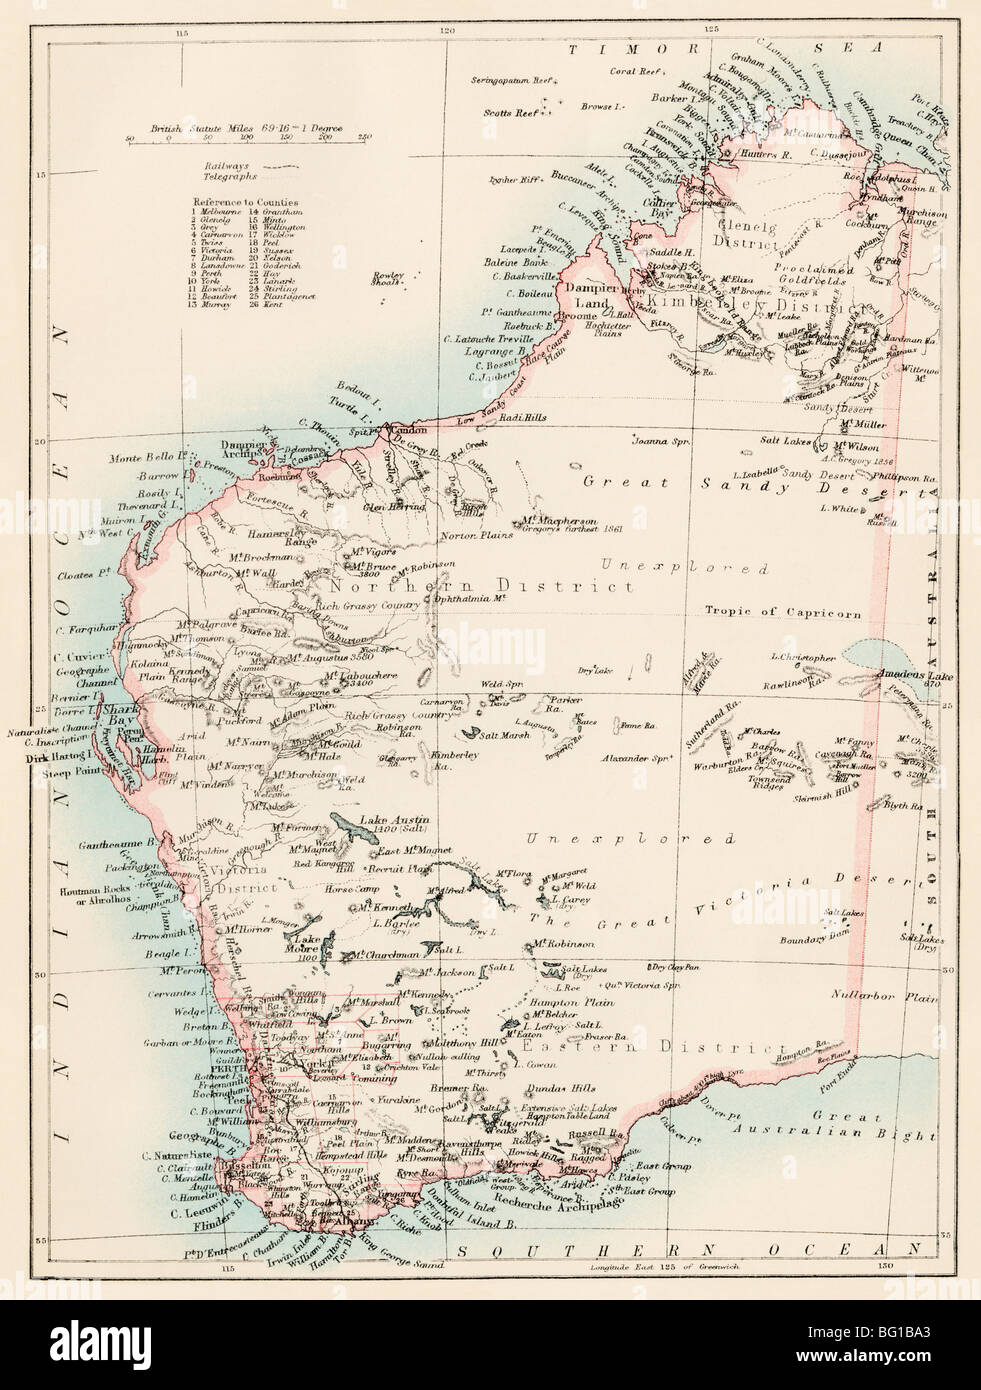 Map of Western Australia, 1870s - Stock Image